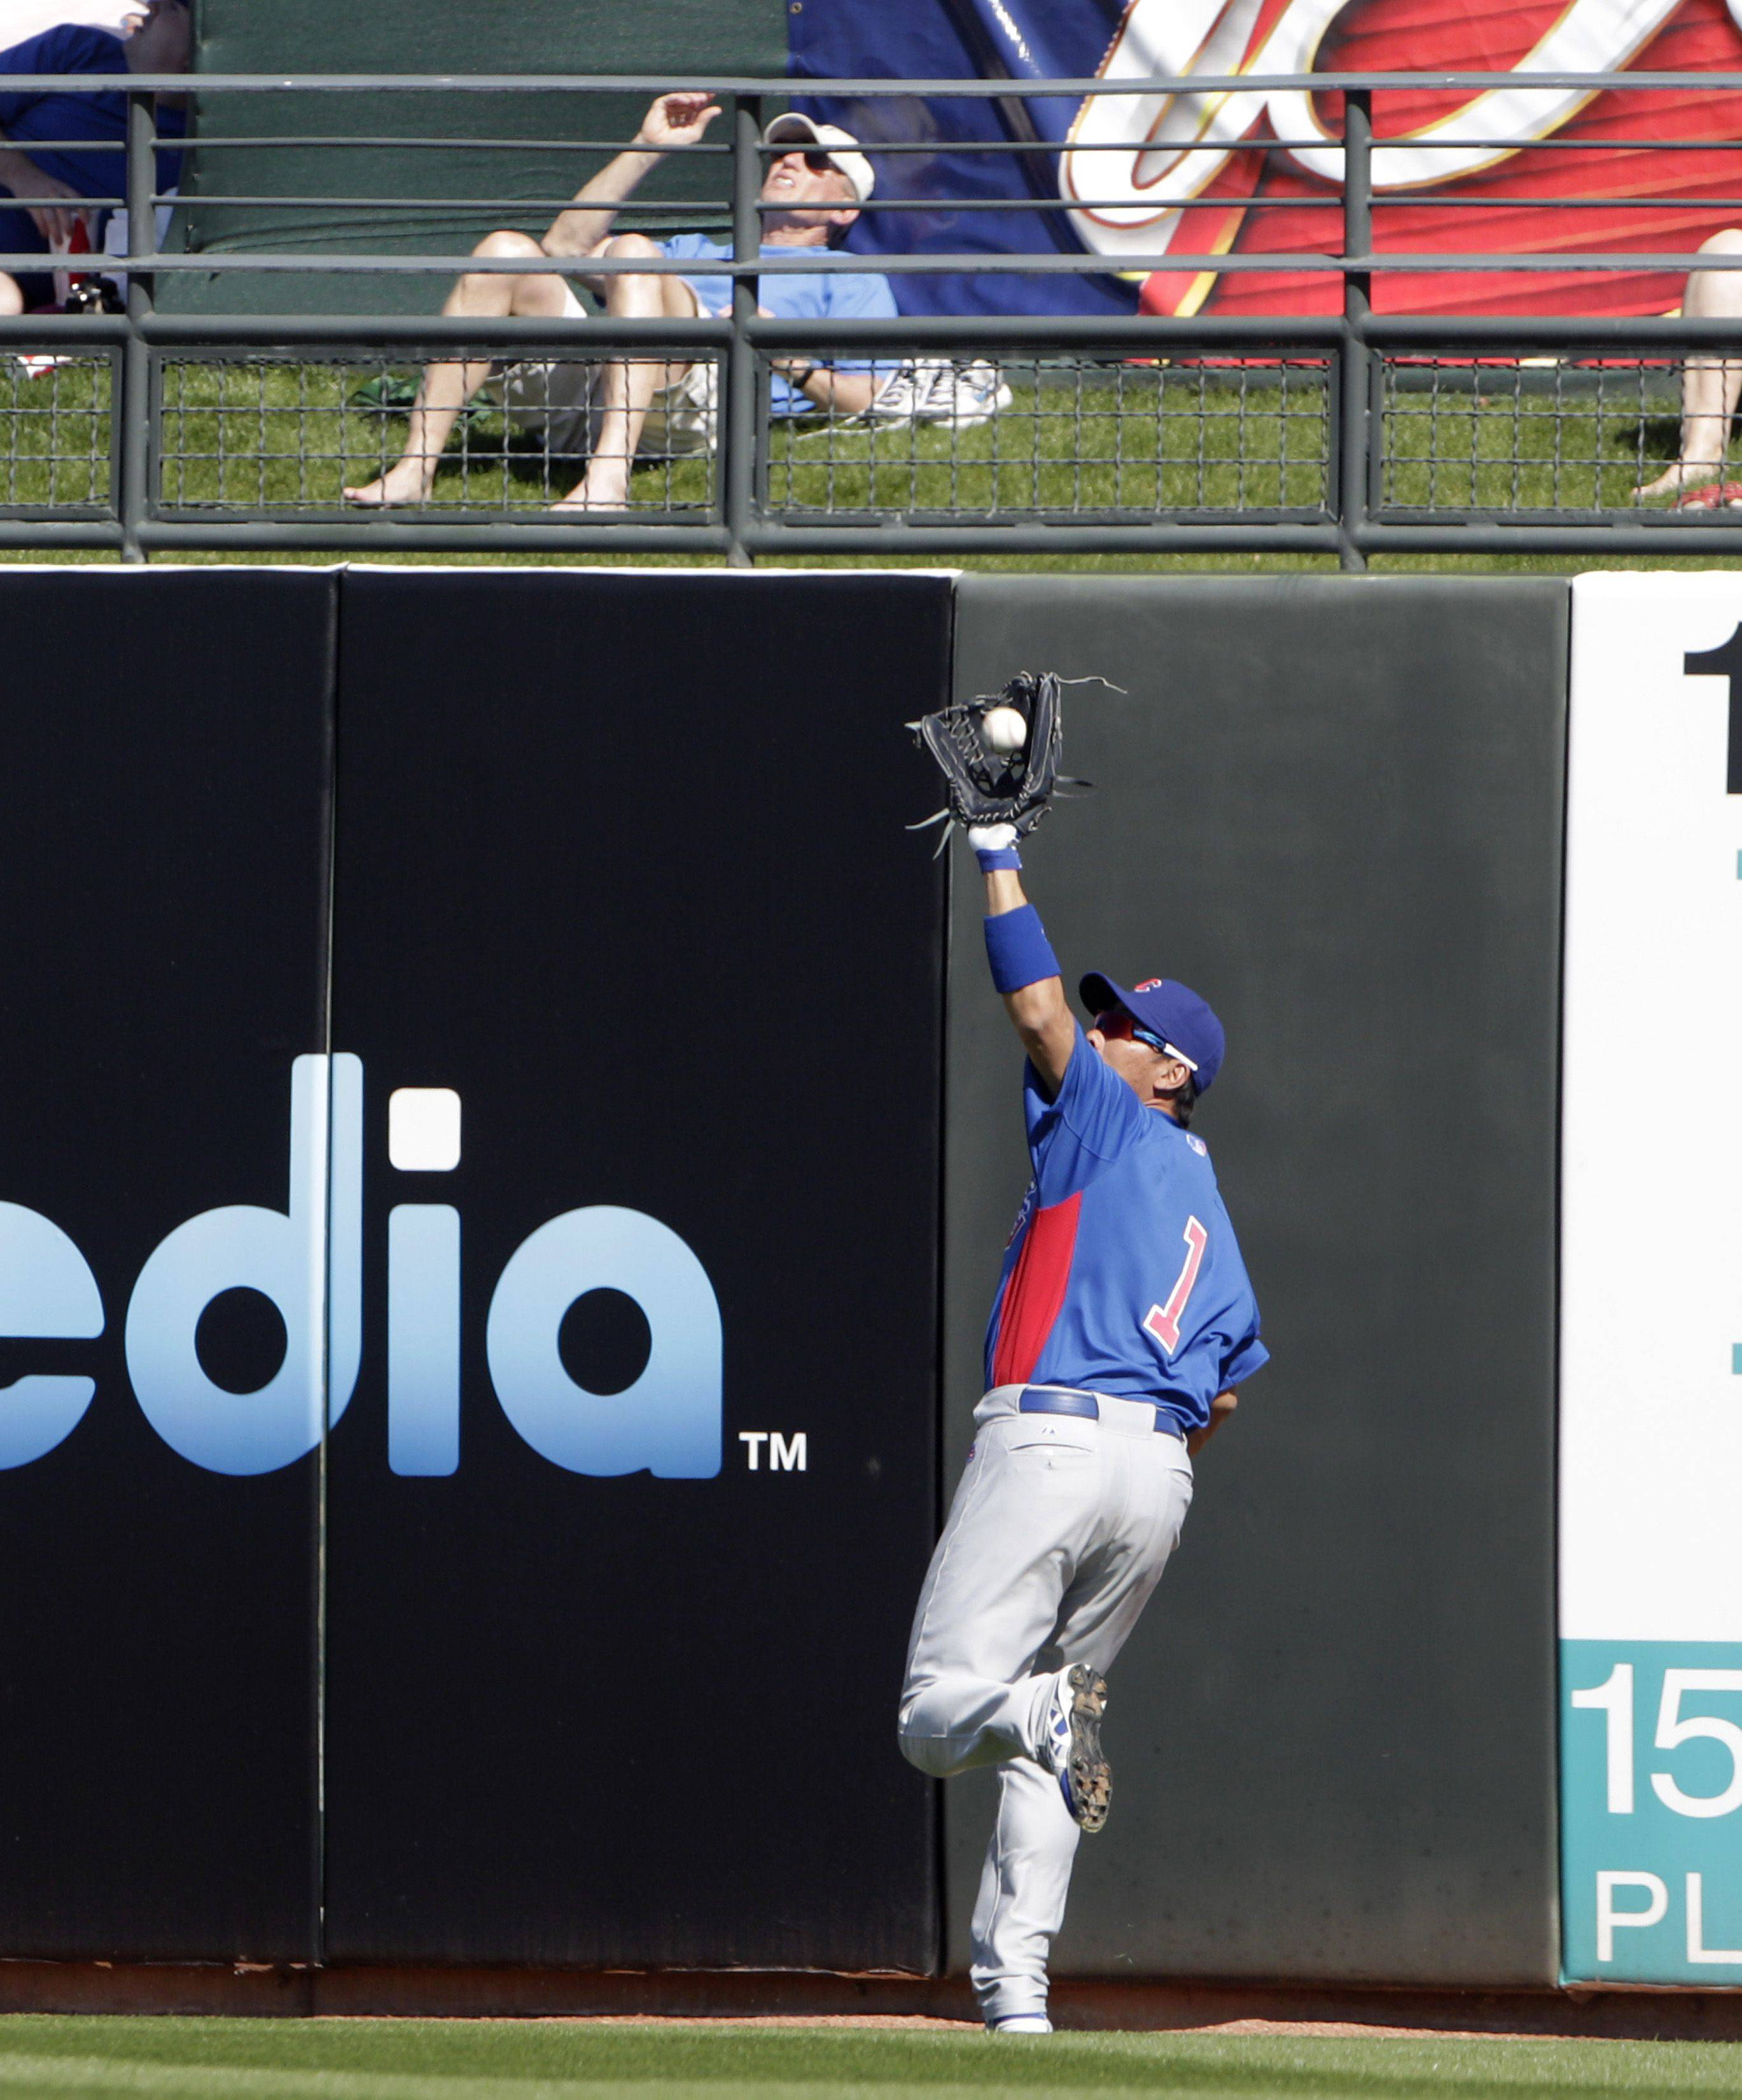 Cubs right fielder Kosuke Fukudome makes a running catch to take a hit away from Kansas City Royals' Mike Aviles last week in their Cactus League game in Surprise, Ariz.